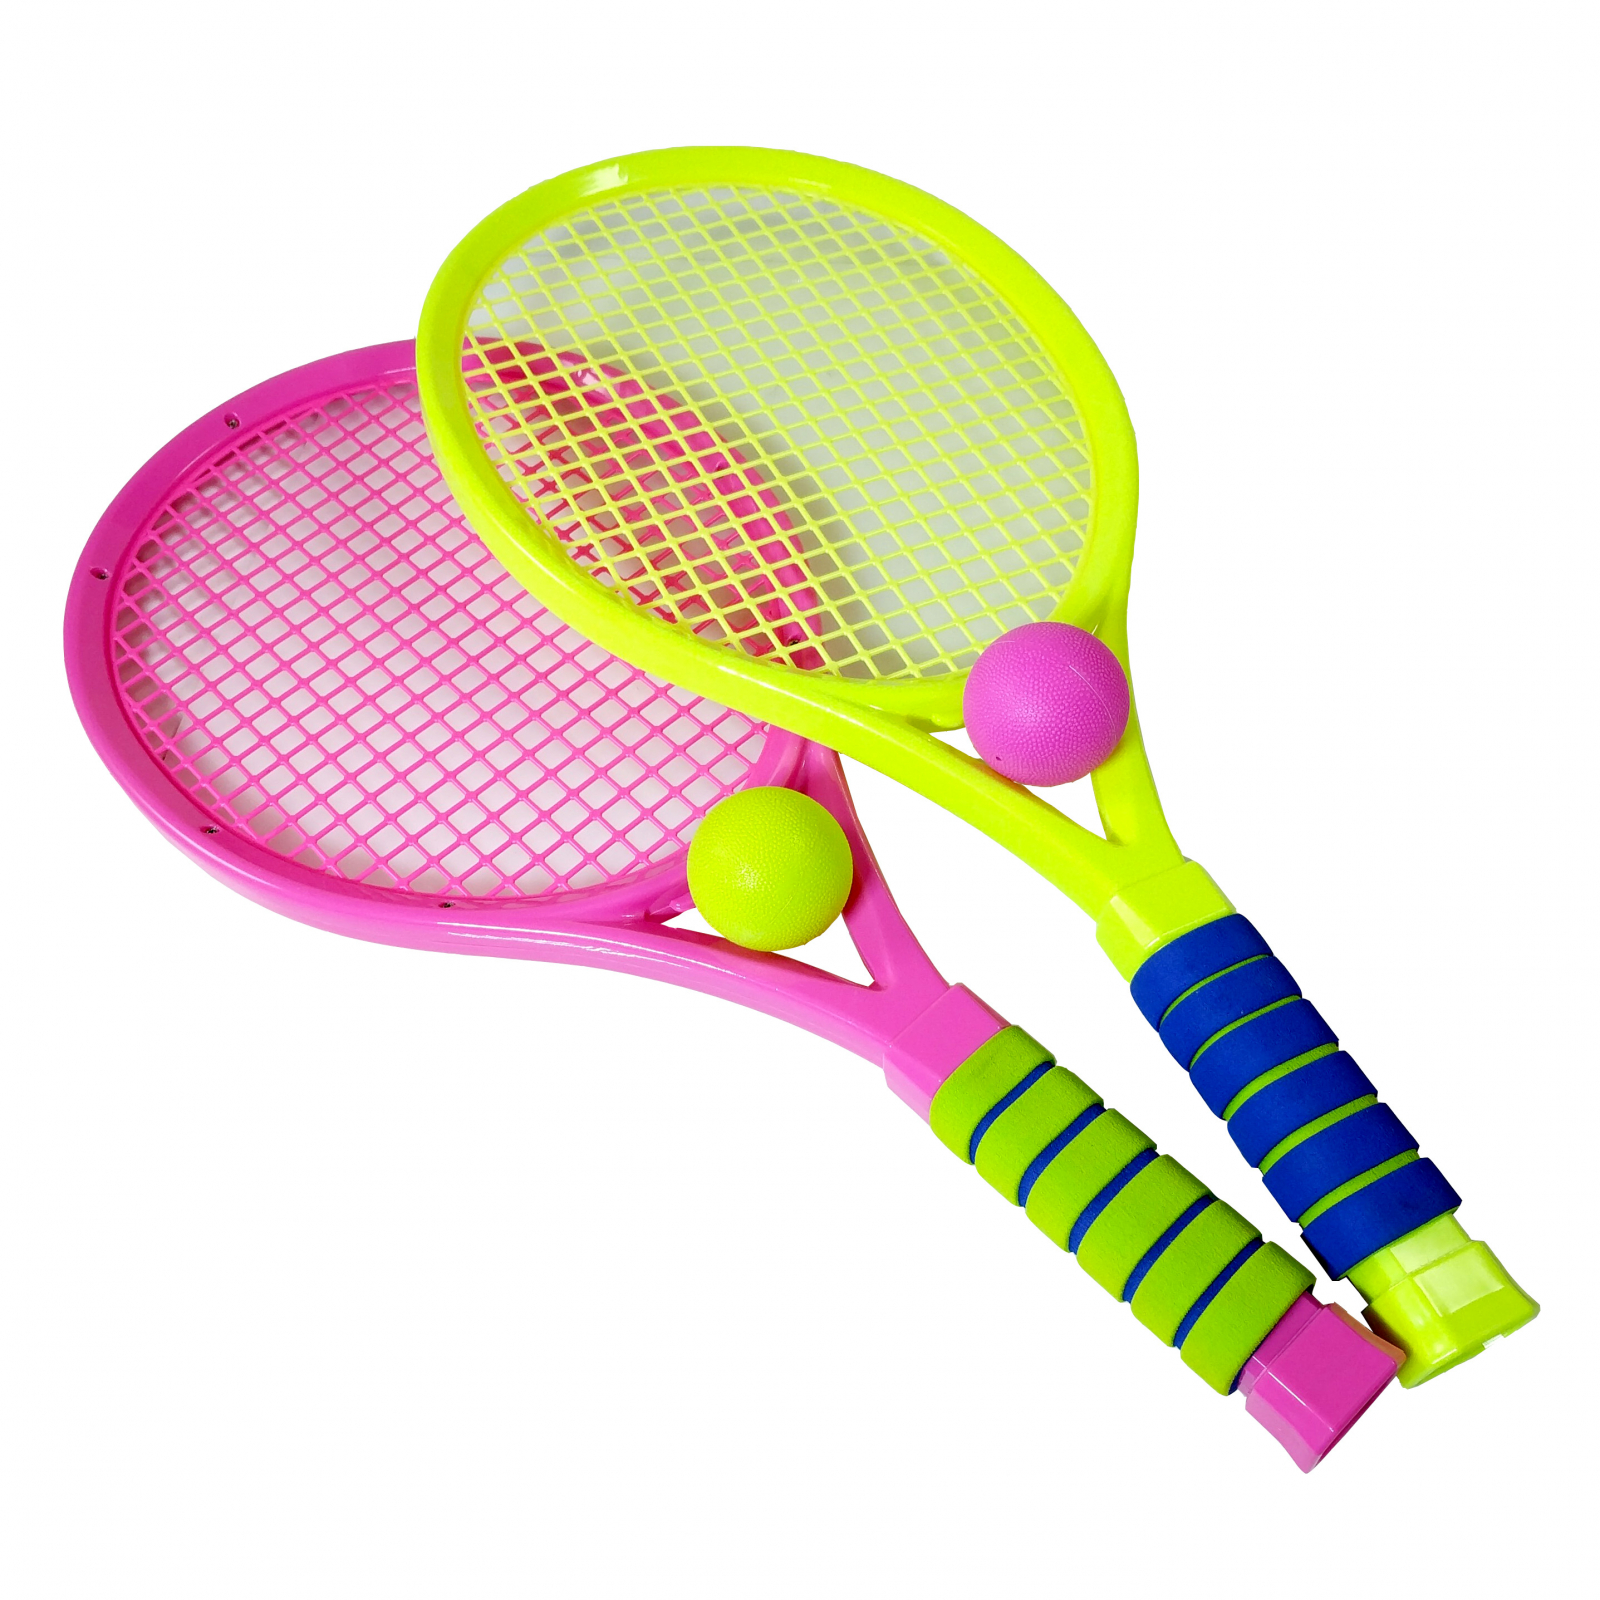 TychoTyke Kids Tennis Rackets Outdoor Exercise - Pink